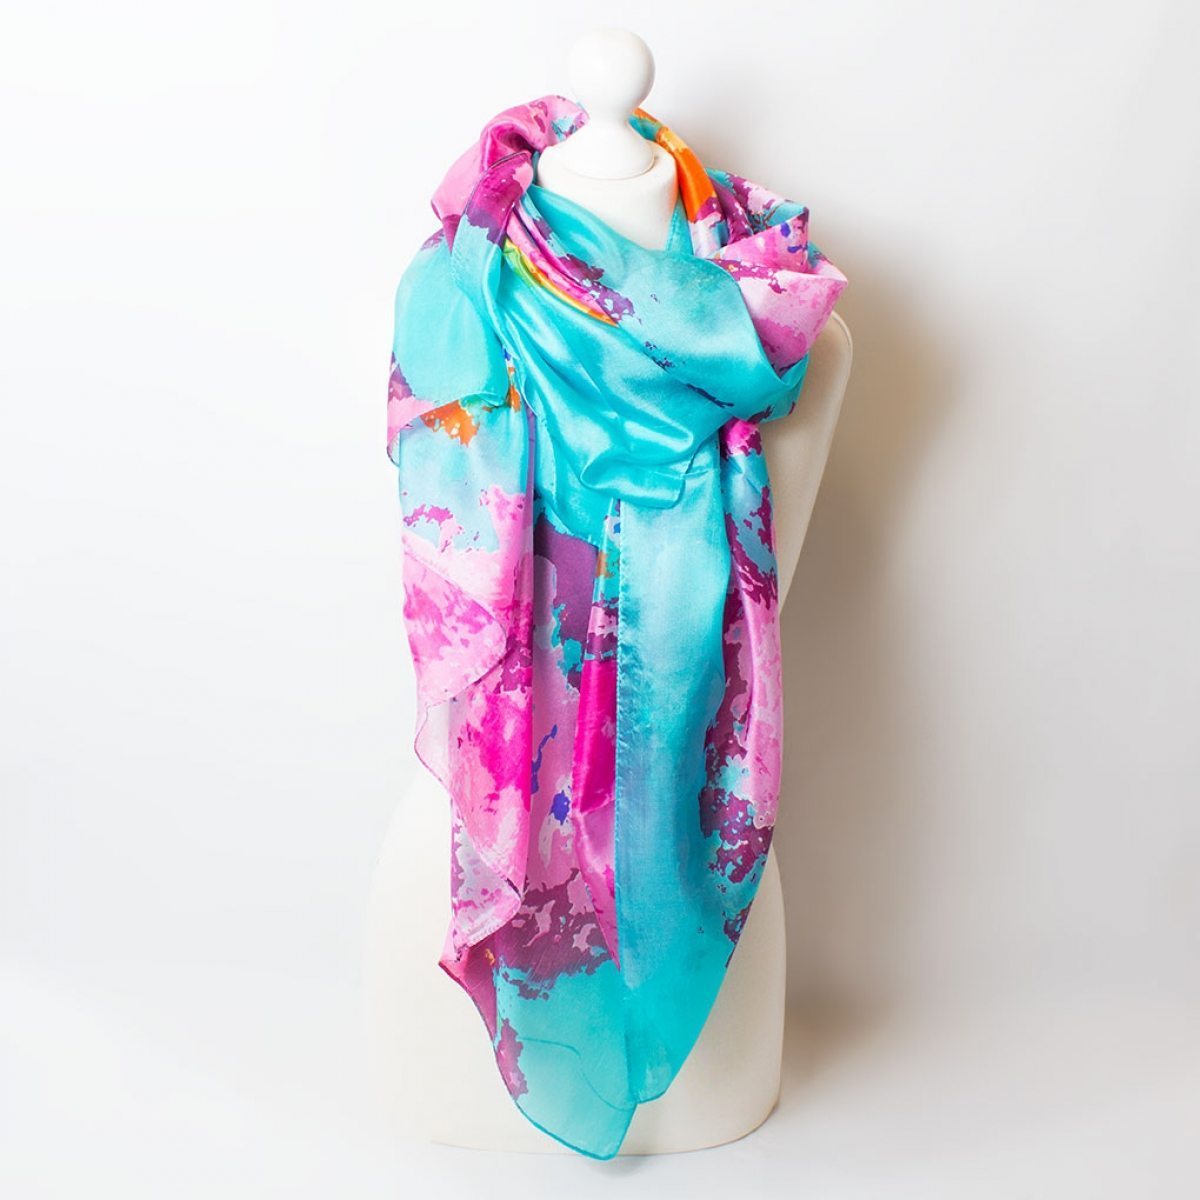 709 Turquoise and Pink